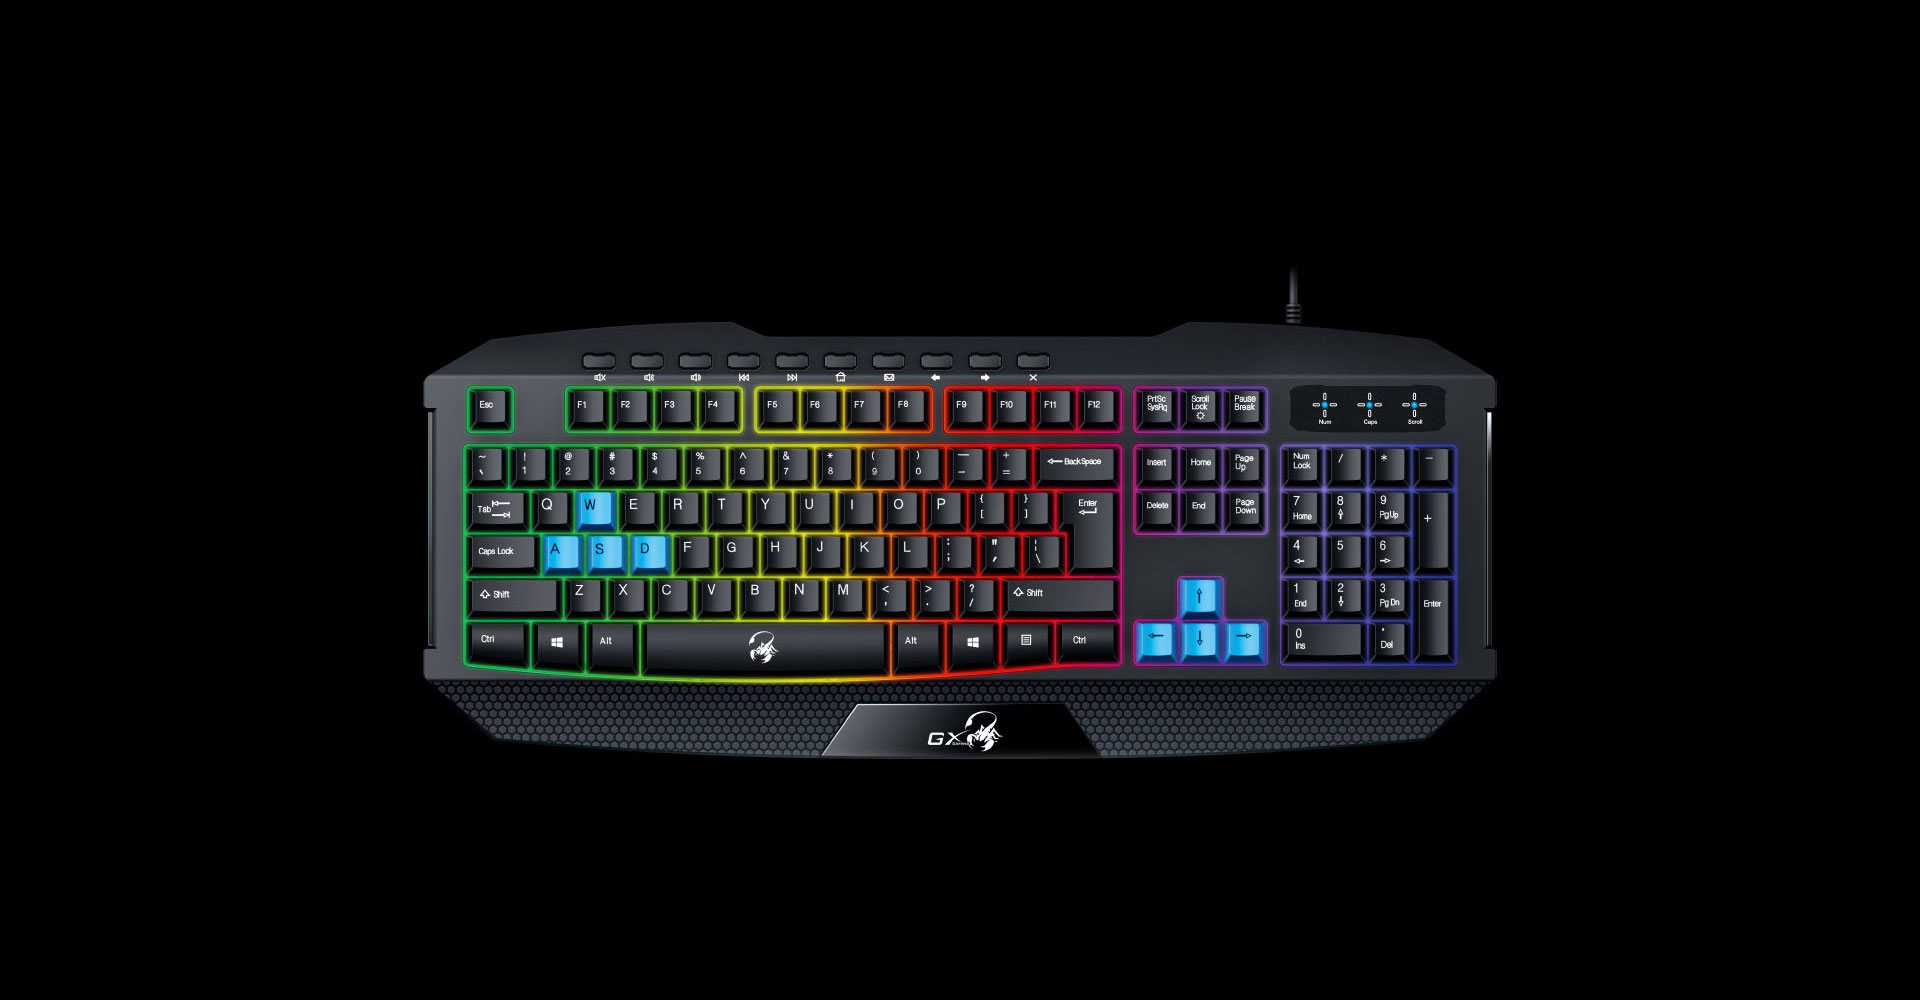 Teclado GX Scorpion K215 RGB Led Hotkeys